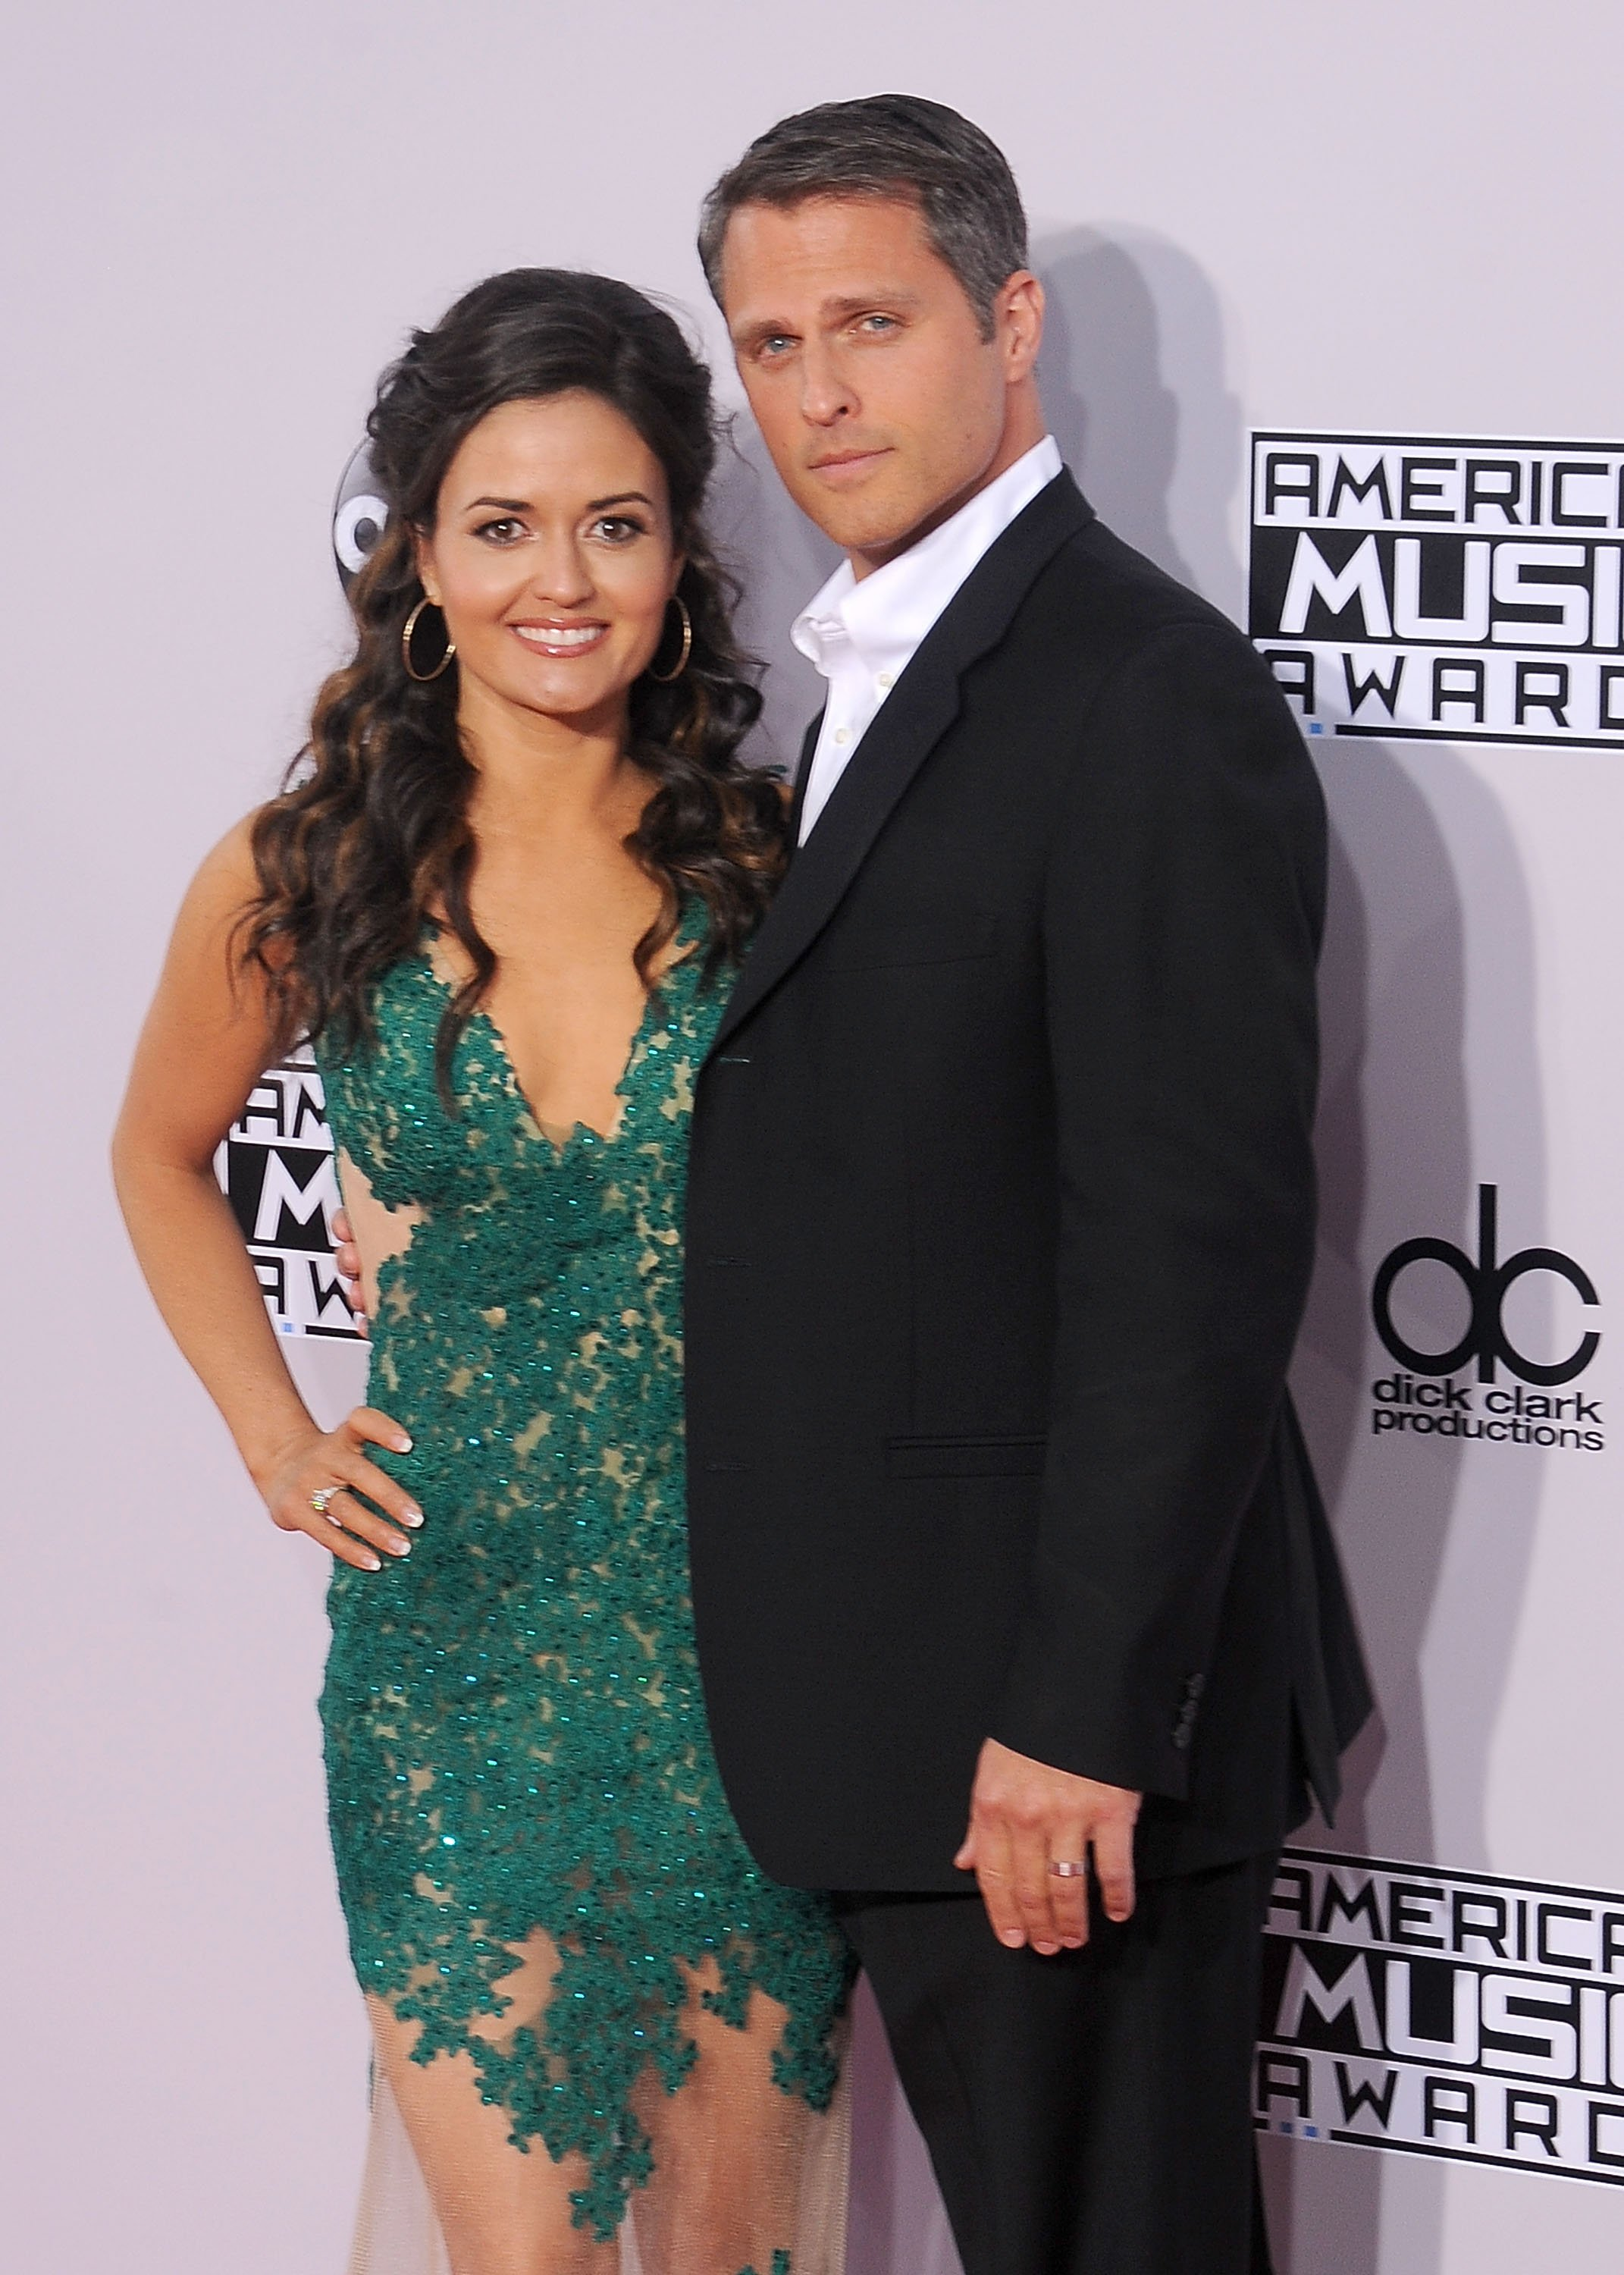 Danica McKellar and husband Scott Sveslosky arrive at the 2014 American Music Awards at Nokia Theatre L.A. Live on November 23, 2014 | Photo: GettyImages